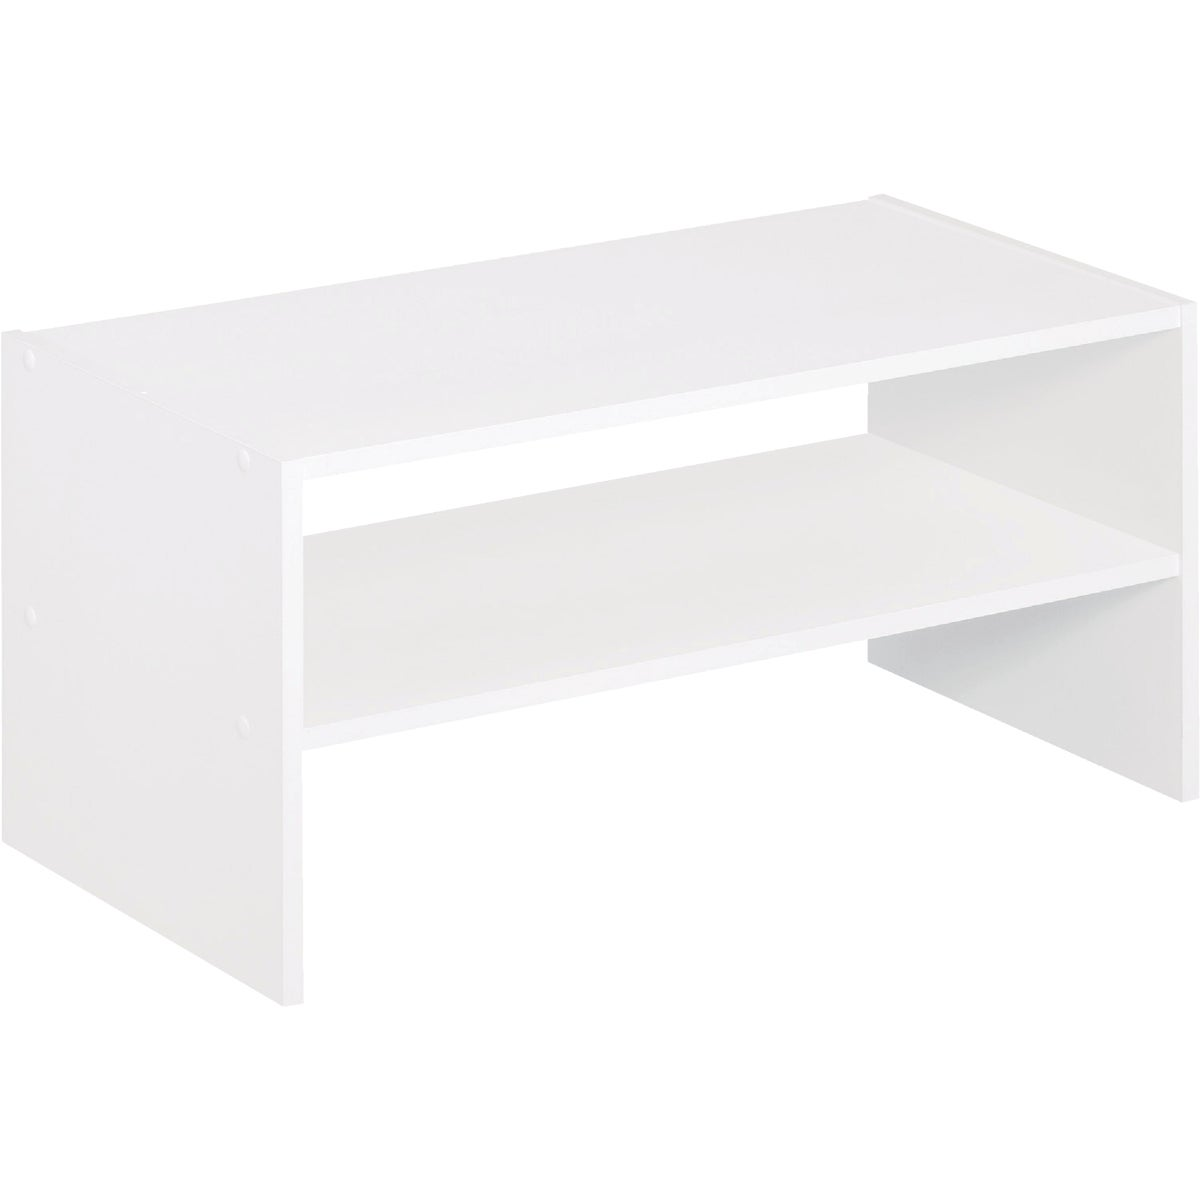 "24"" WHT HORIZ ORGANIZER - 899300 by Closetmaid"